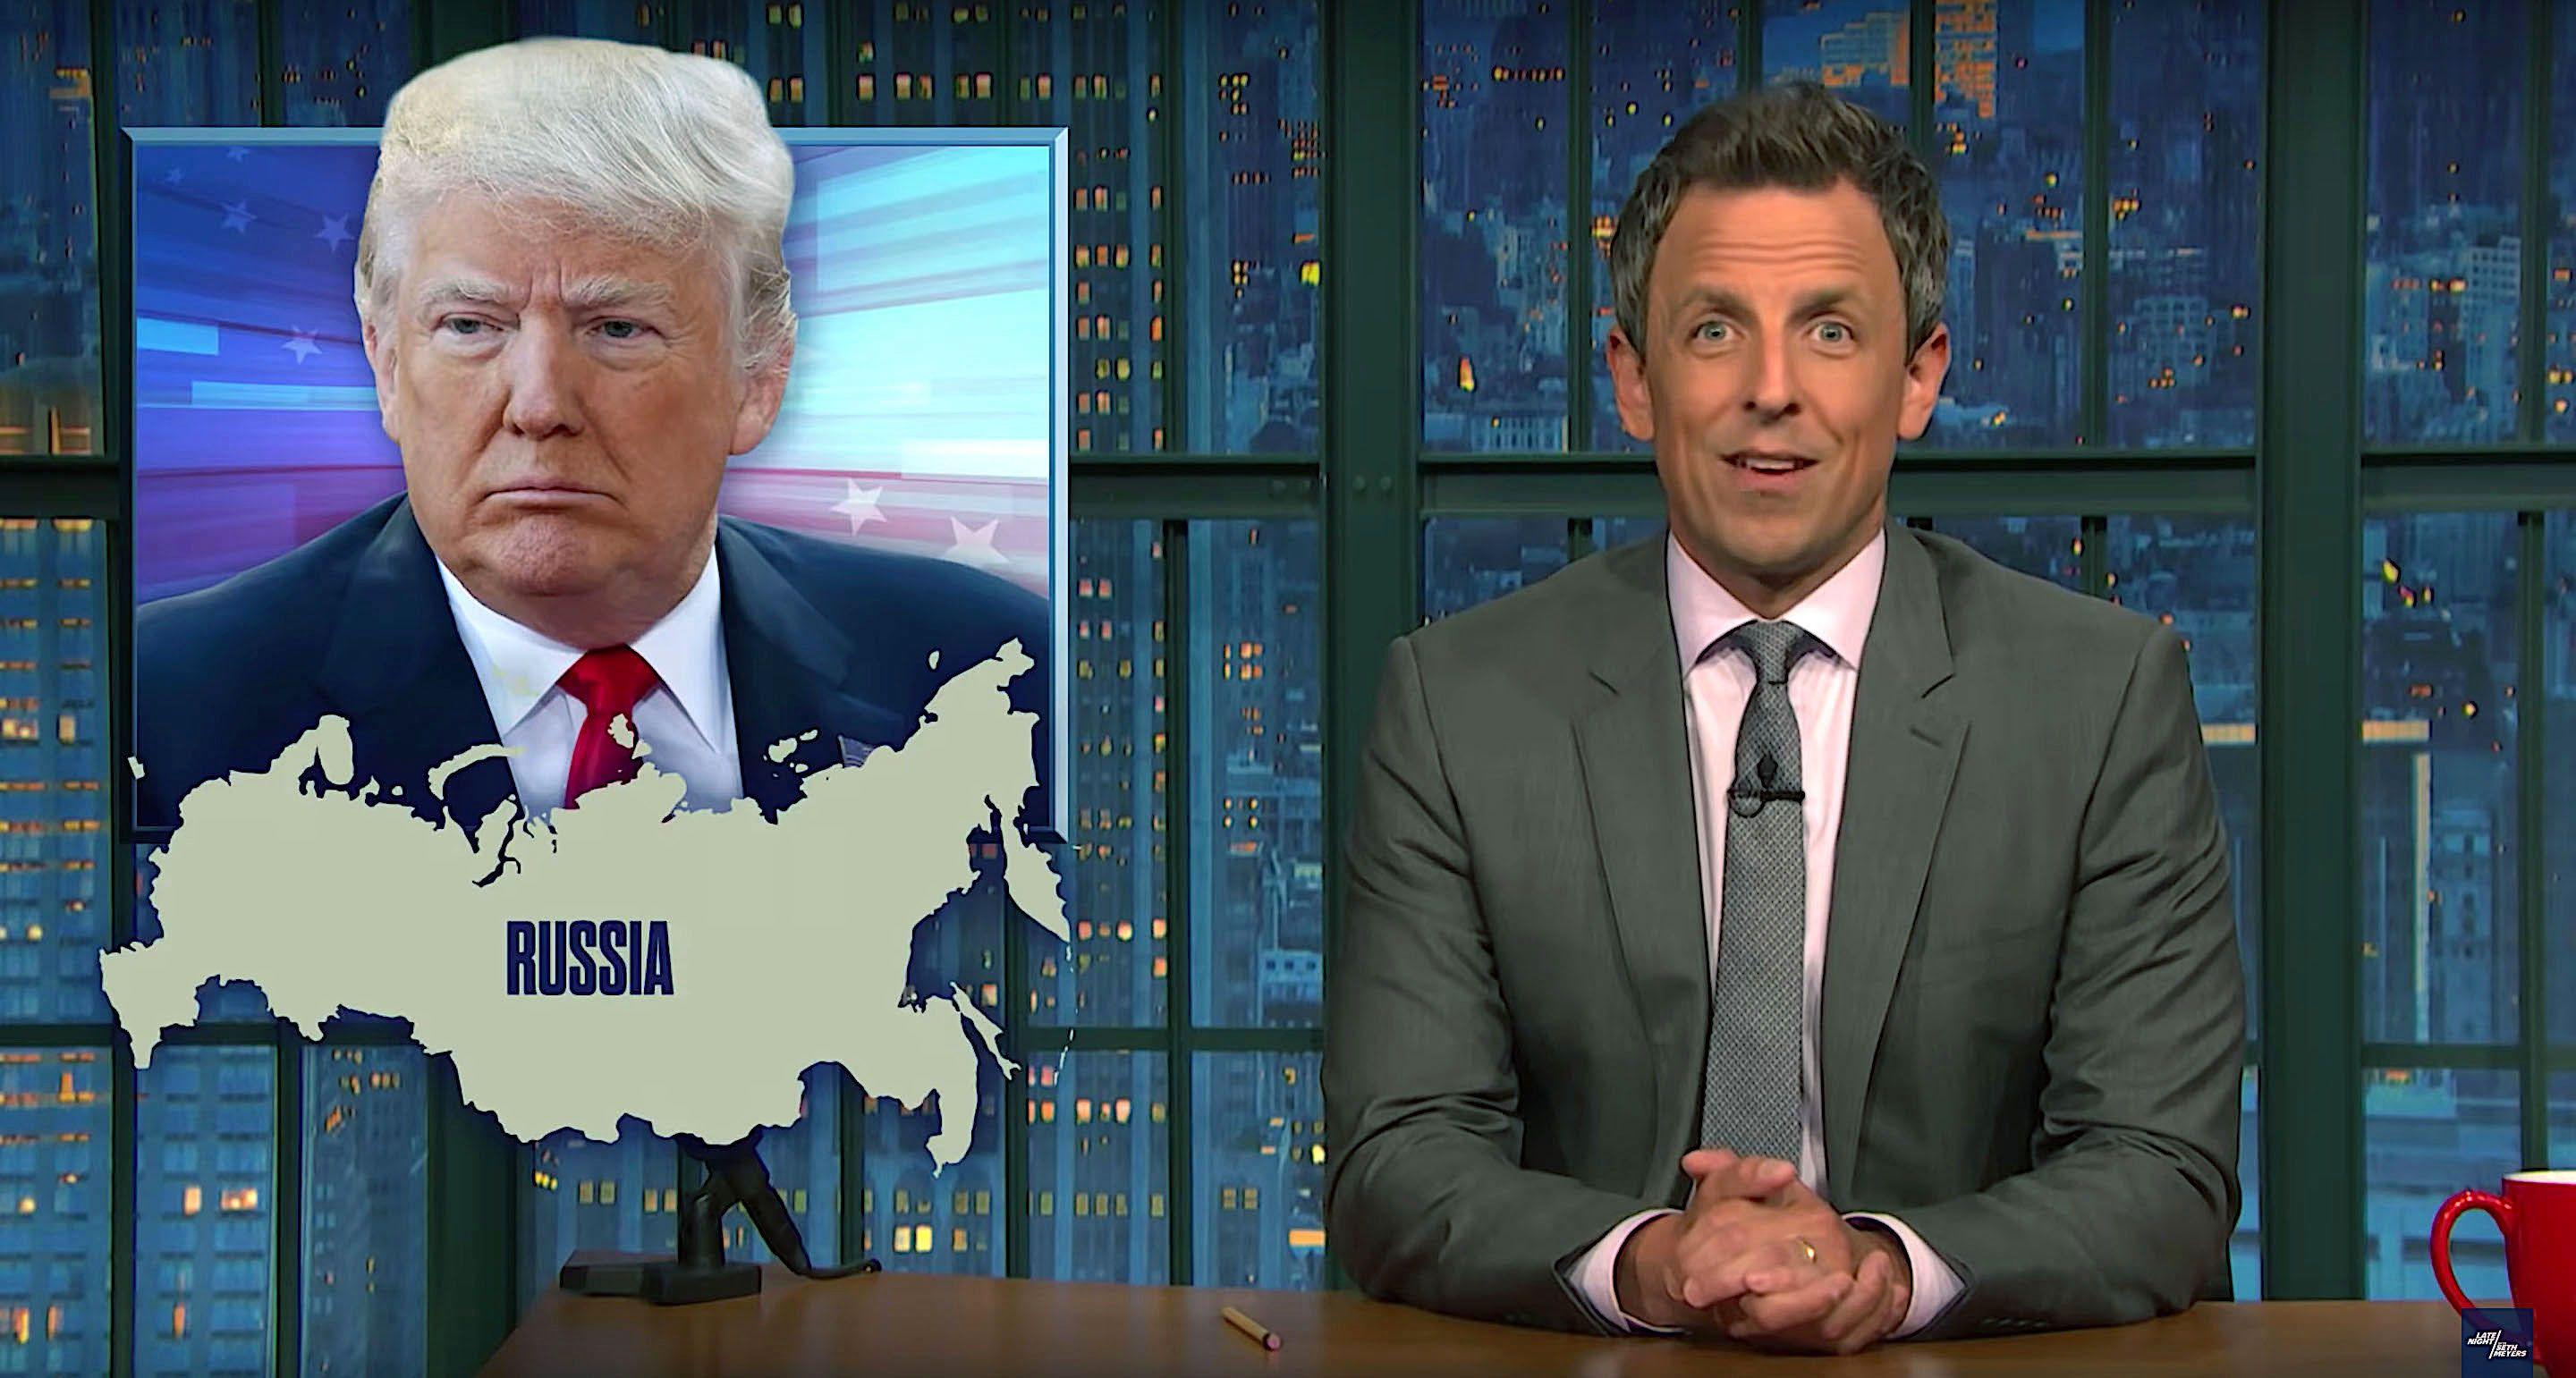 Seth Meyers of Late Night says President Donald Trump is feeling the pressure of the Russia investigation